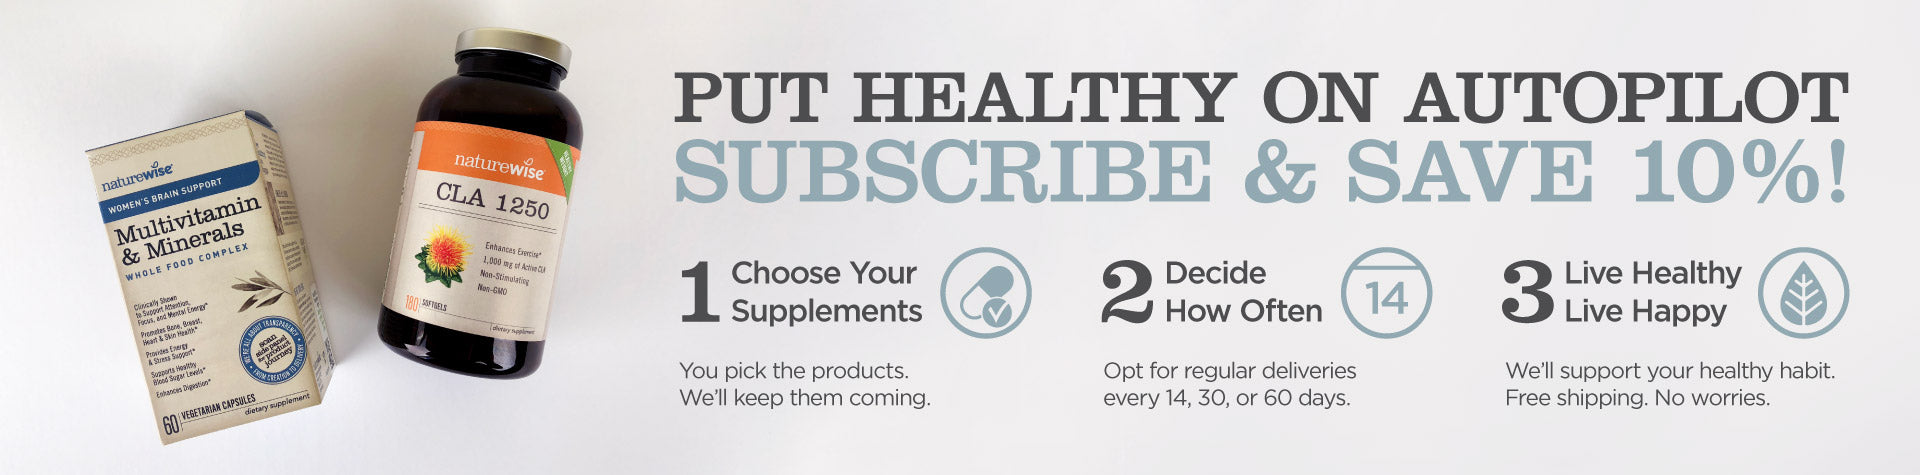 Subscribe & Save 10%. Take a journey to a healthier, happier you with natural health supplements from NatureWise, including multivitamins, ashwagandha, probiotics, and herbal blends for stress, healthy aging, healthy weight, and more.